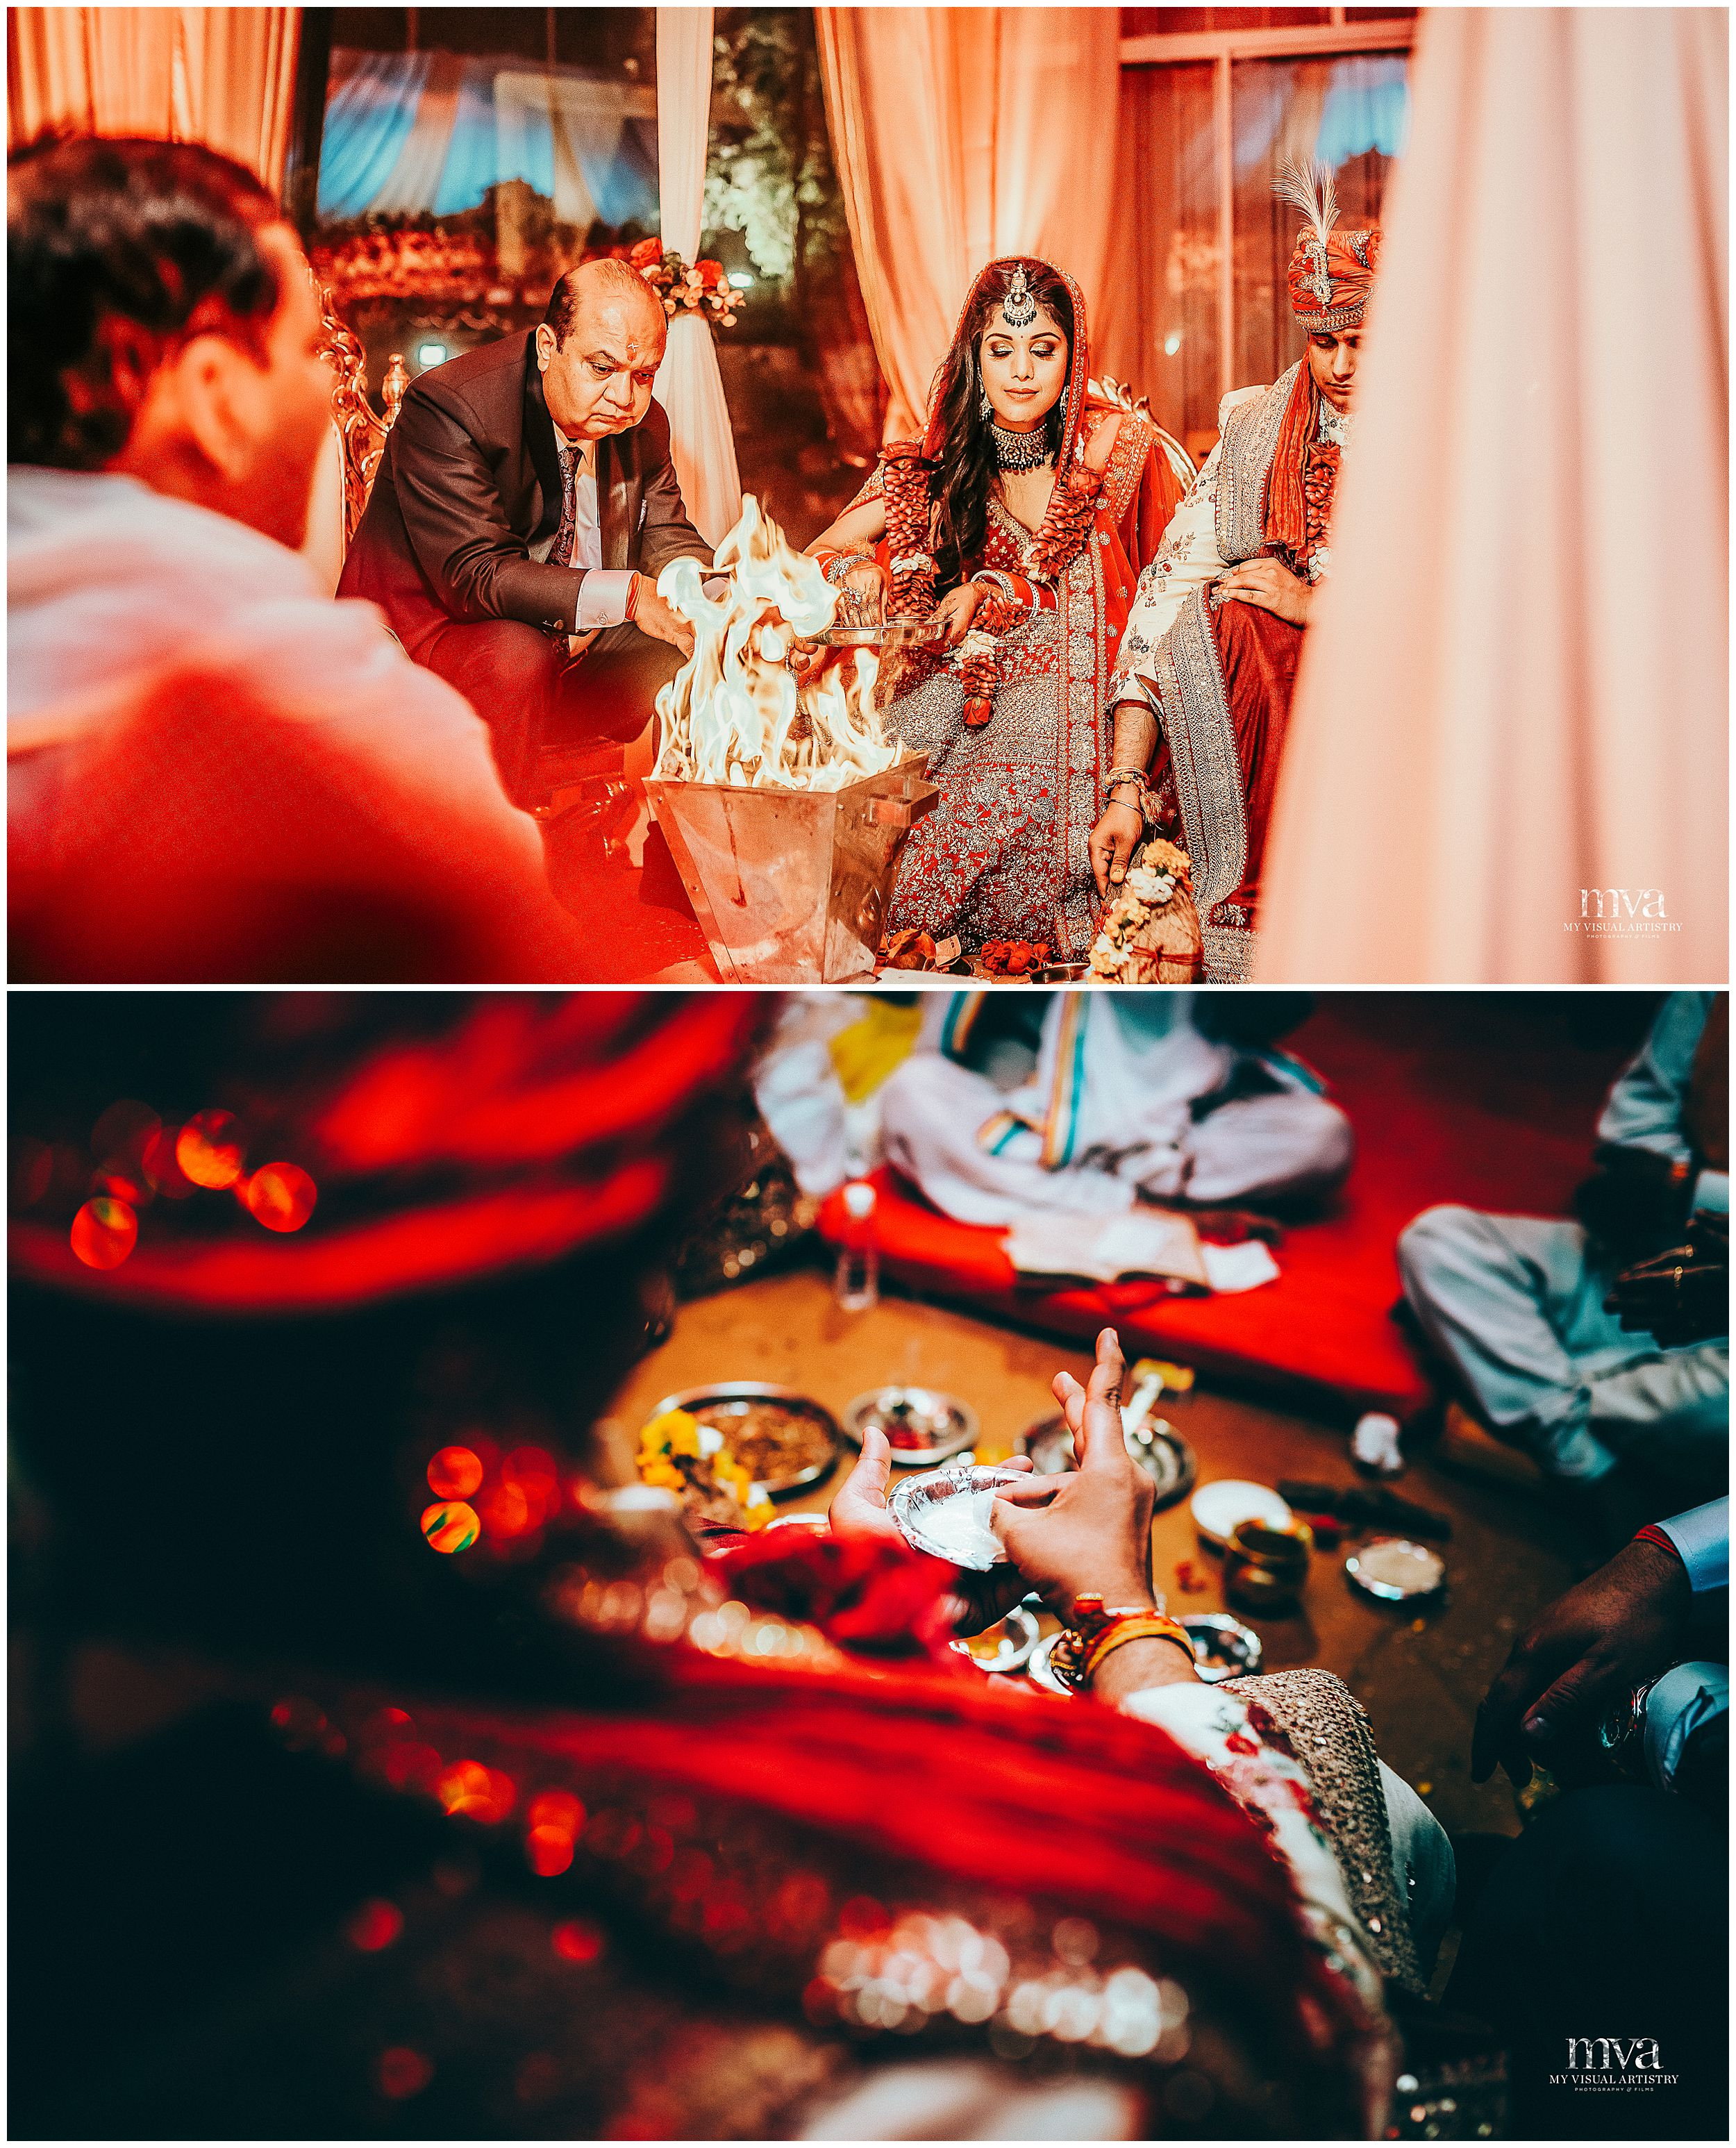 SIDDARTH_SAKSHI_MYVISUALARTISTRY_WEDDING_PHOTOGRAPHY_MVA_EROSHANGRILA_DELHI_0050.jpg